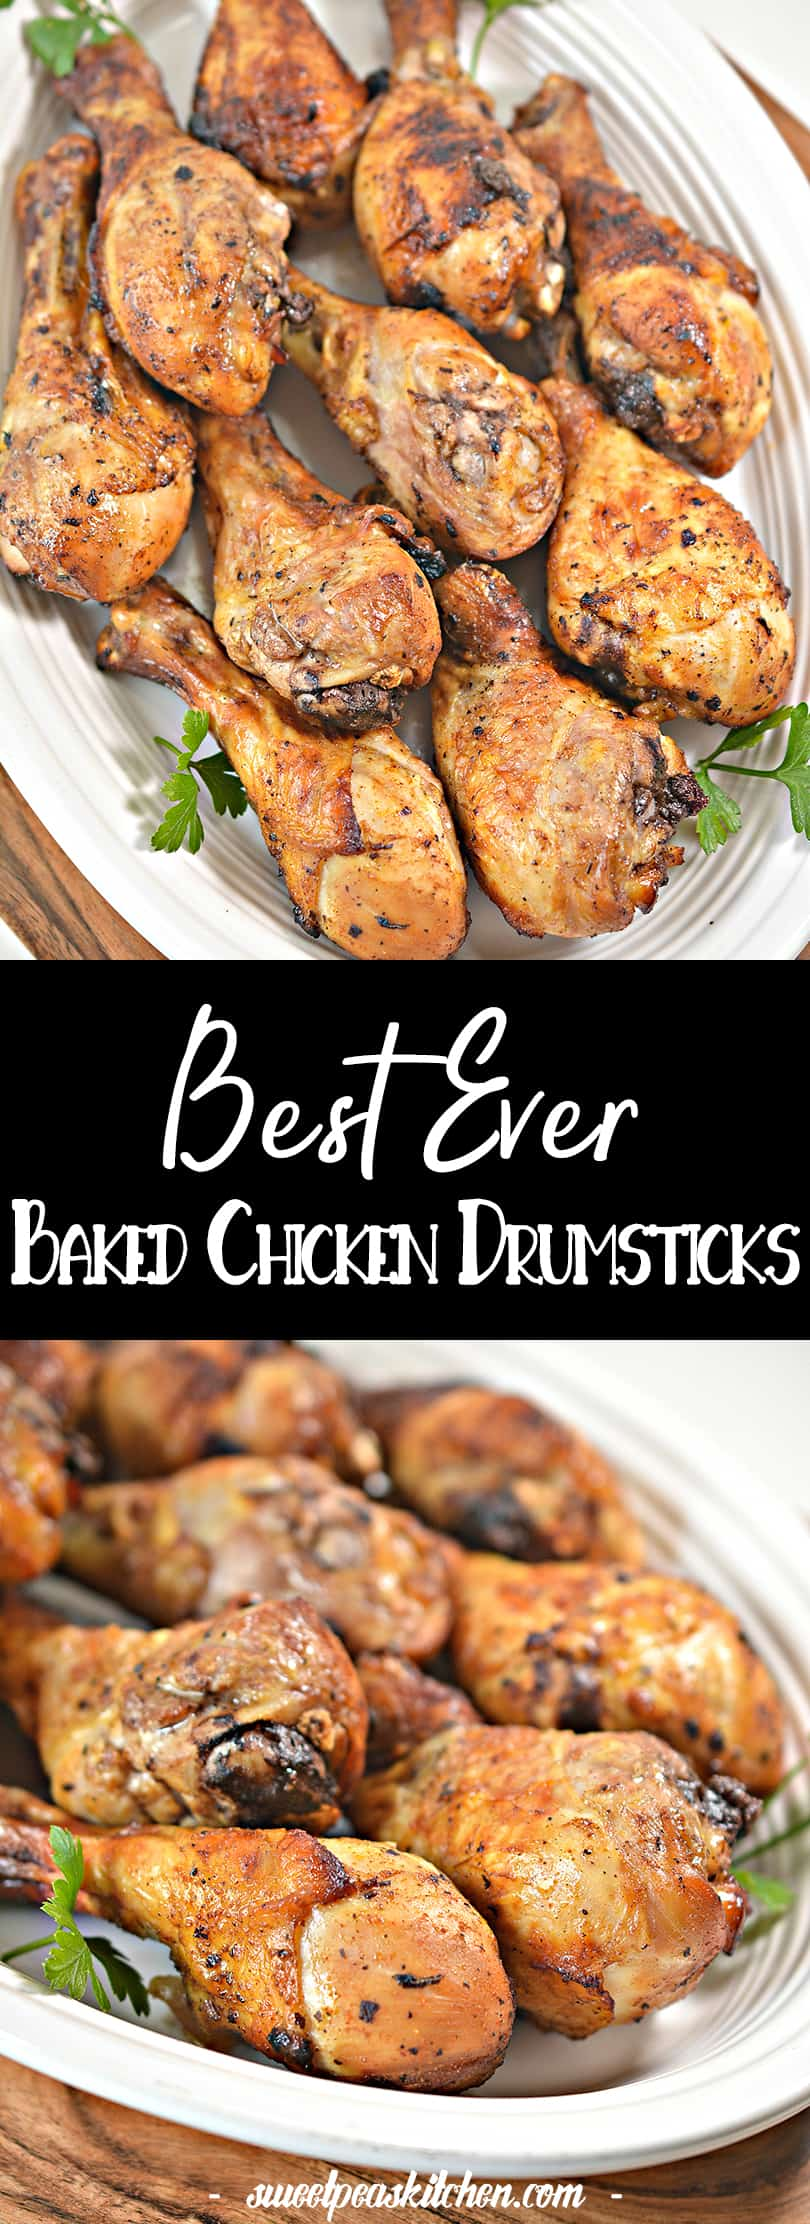 Brown Sugar Glazed Baked Chicken Drumsticks